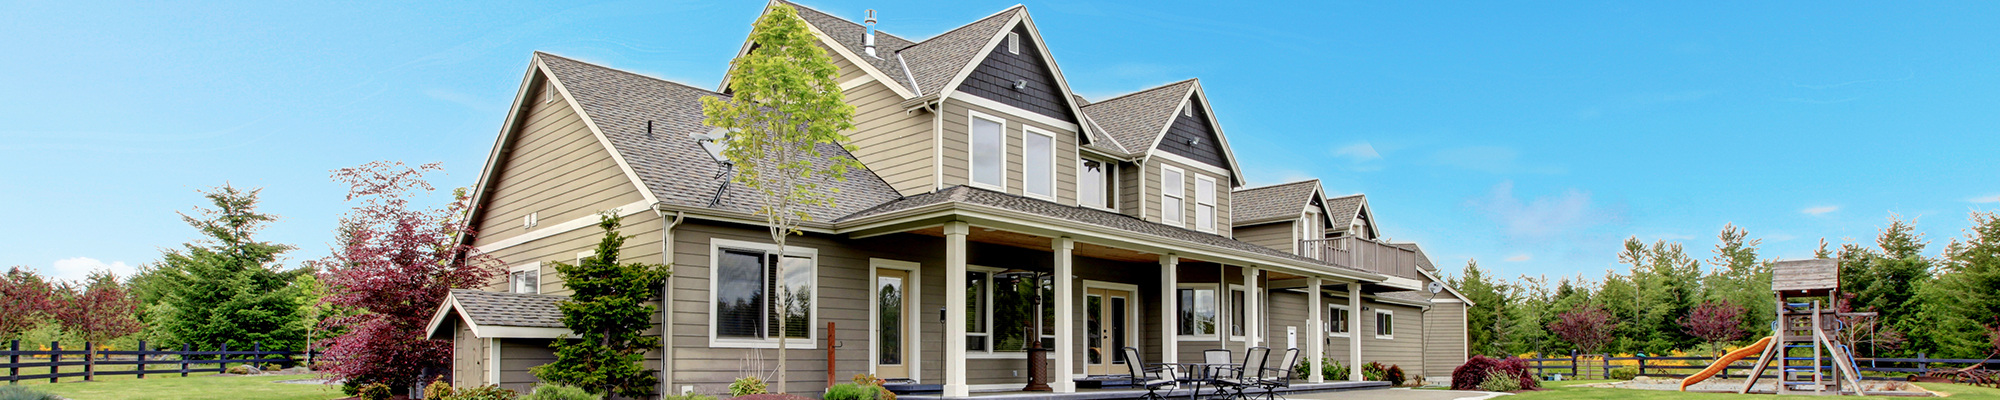 Home Equity Loan On Rental Property Tax Deductible